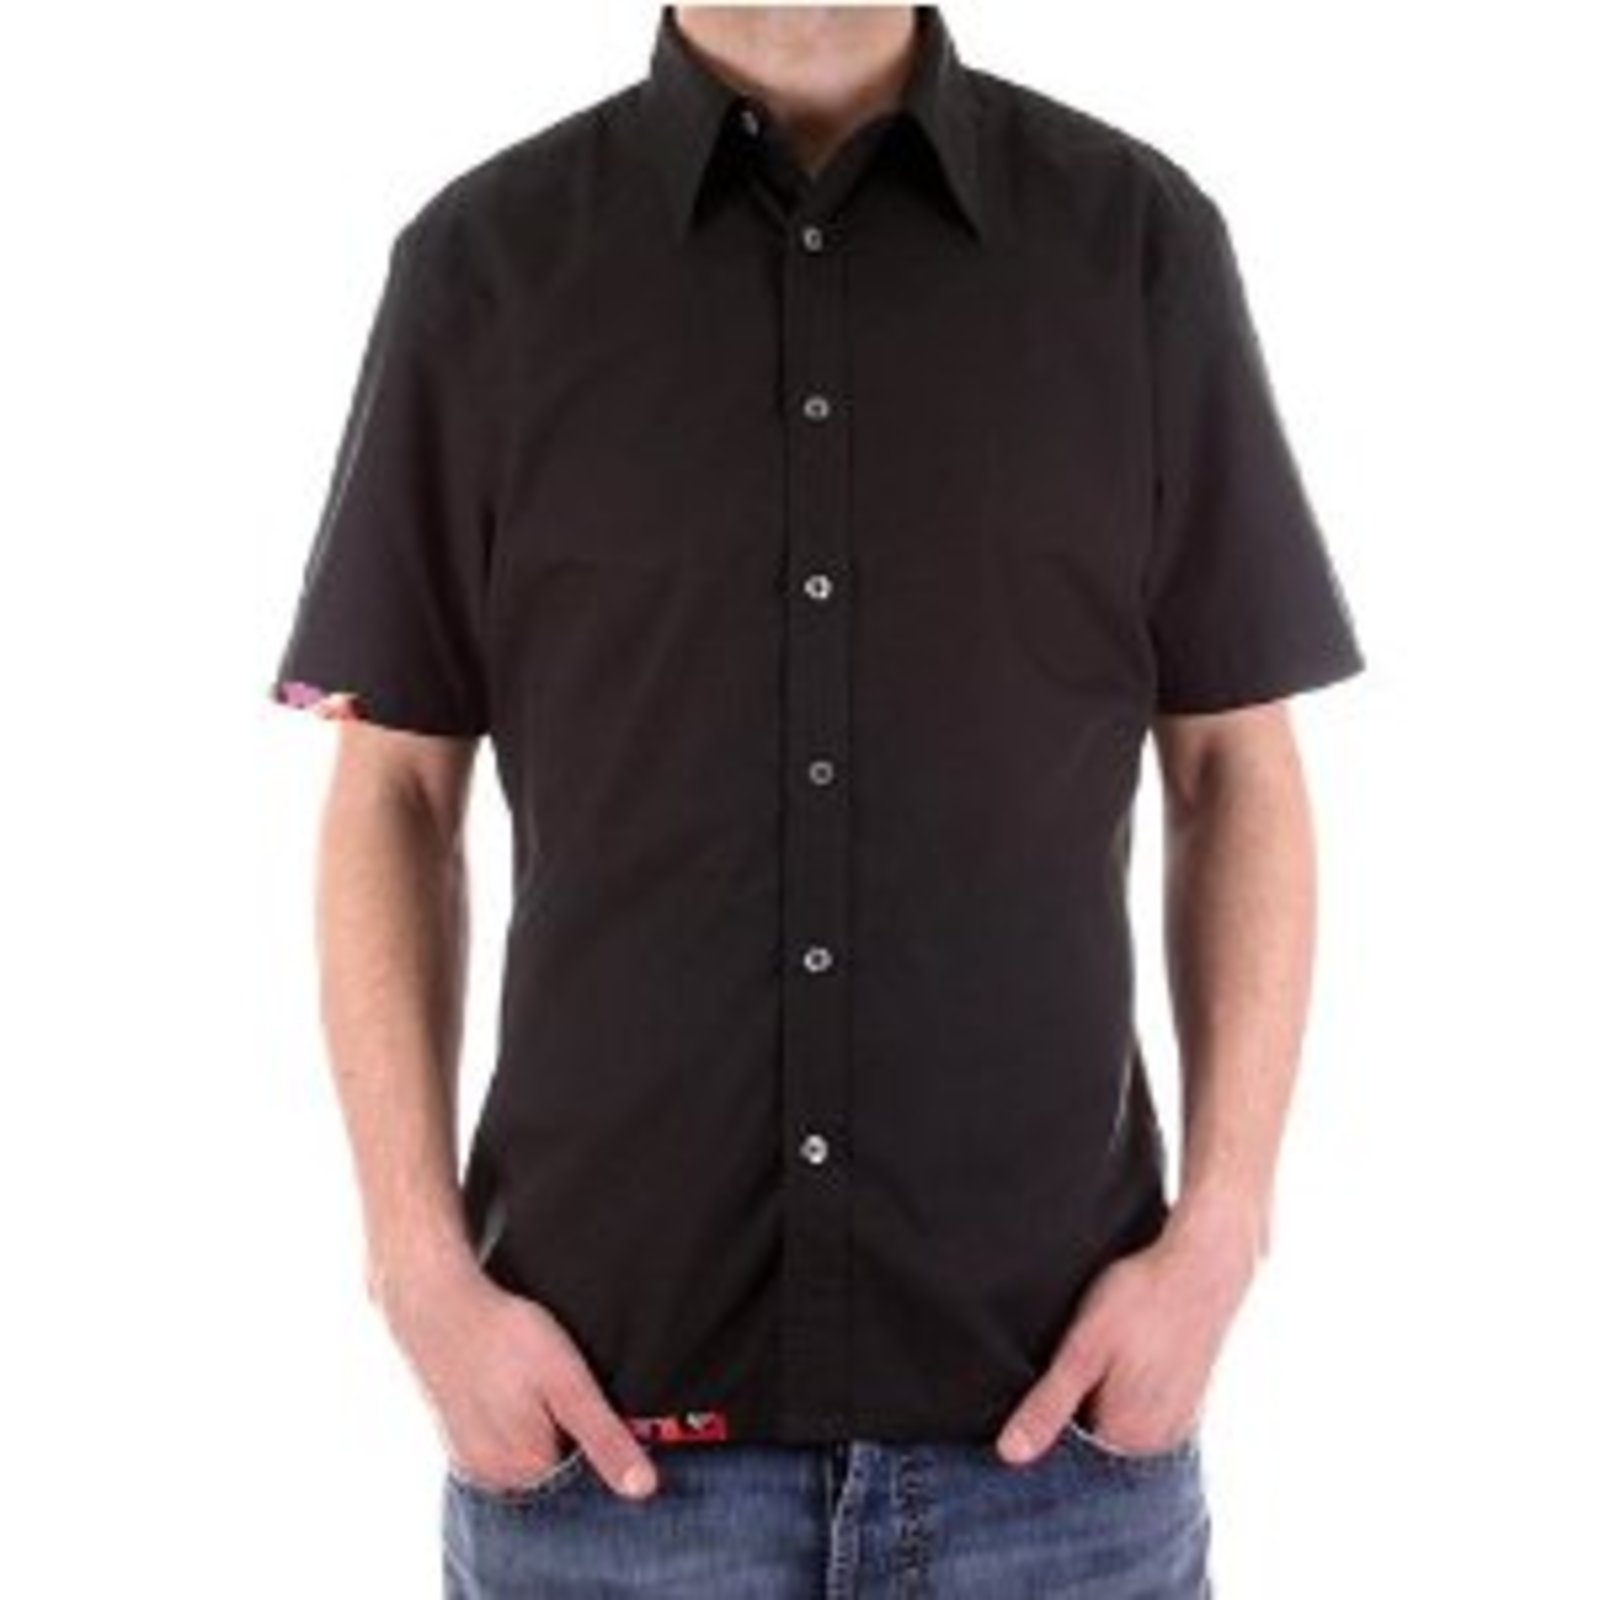 Paul Smith casual shirt mens black short sleeve shirt. PS3464 at ...